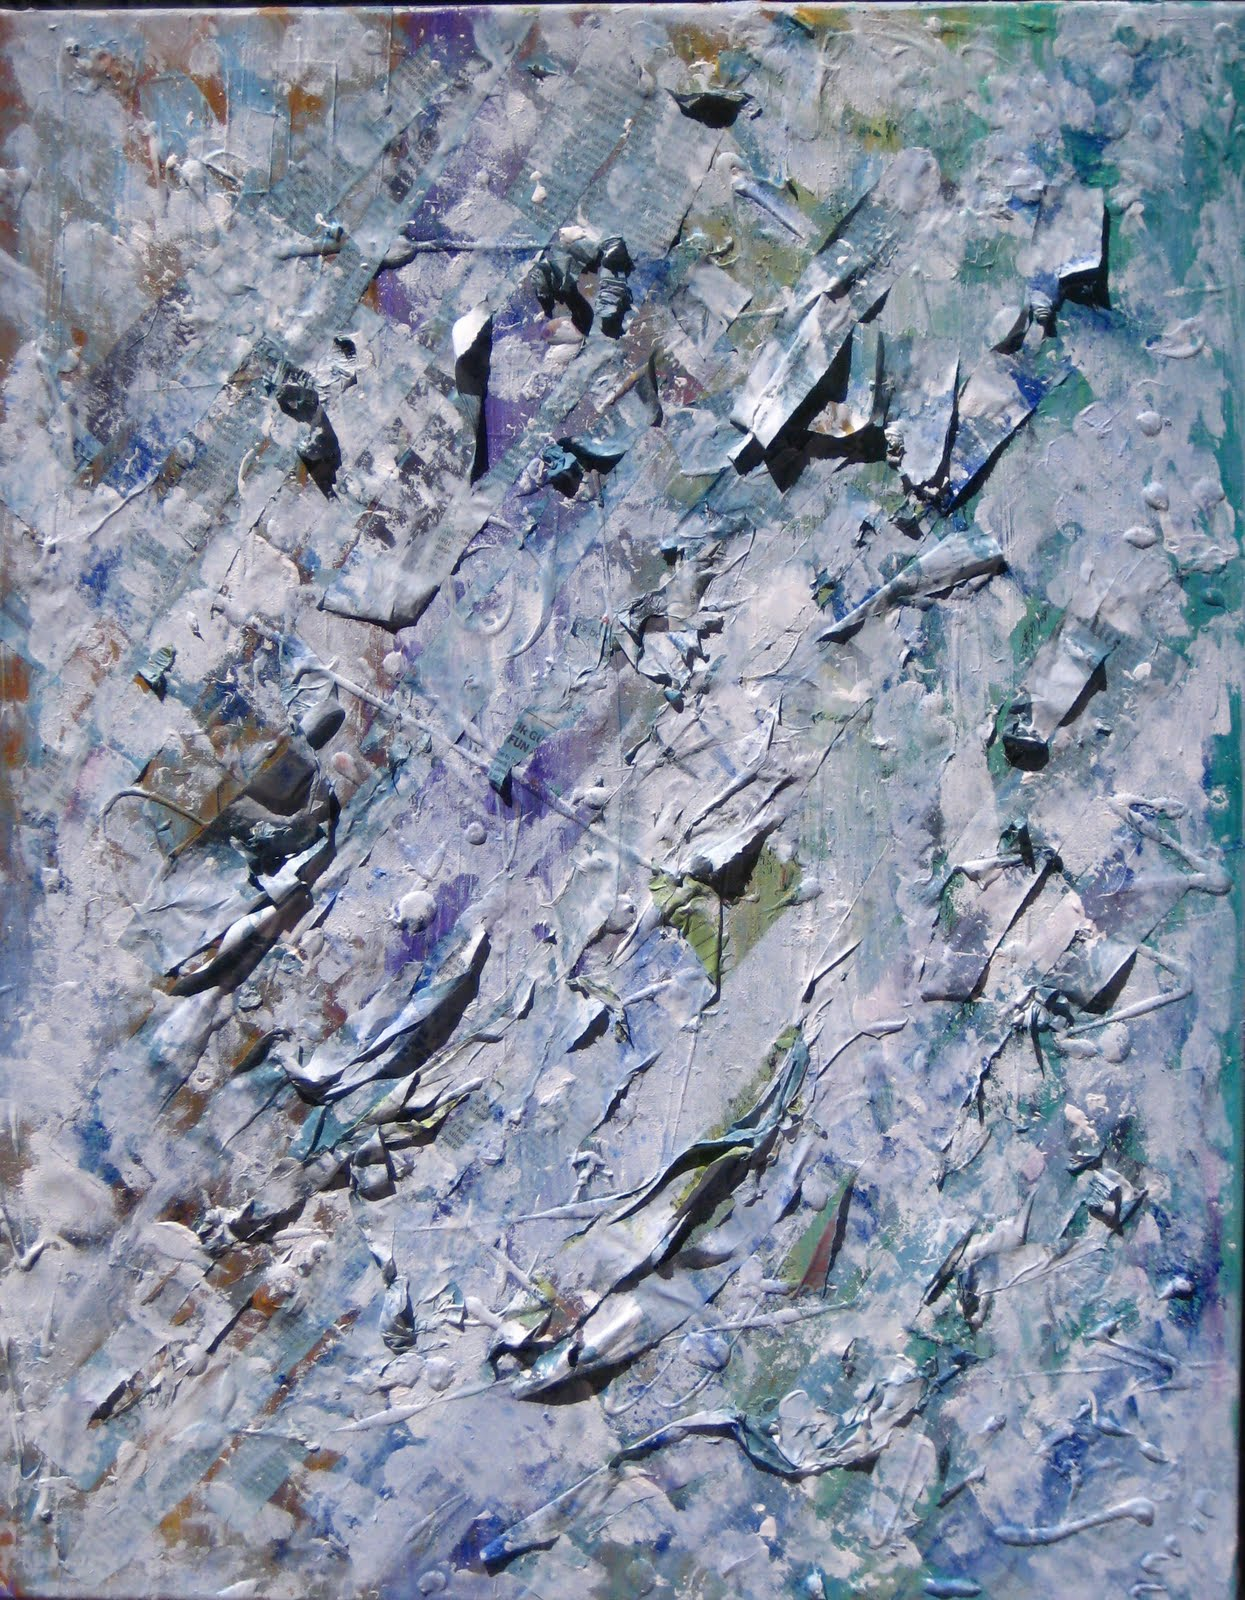 Glacier Abstraction, mixed media on canvas, by Sabrina Brett